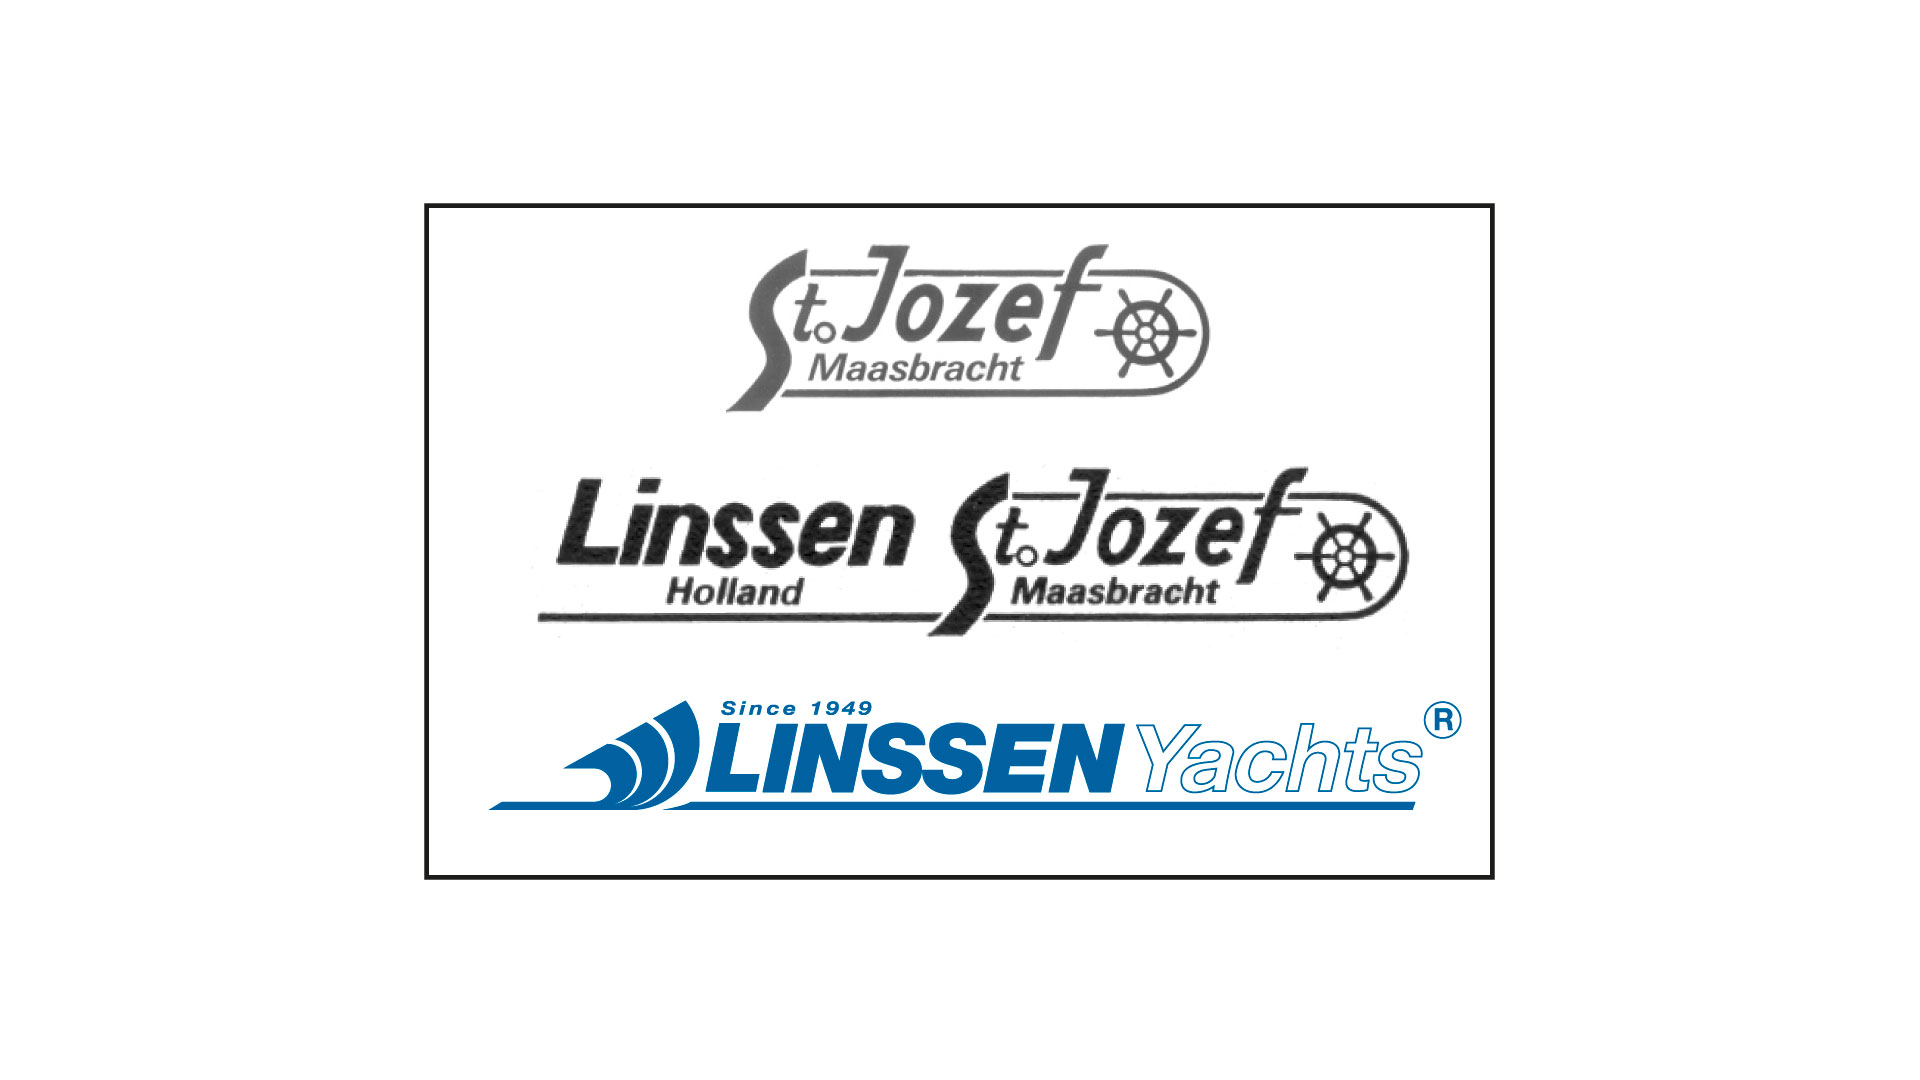 from St Jozef to Linssen Yachts